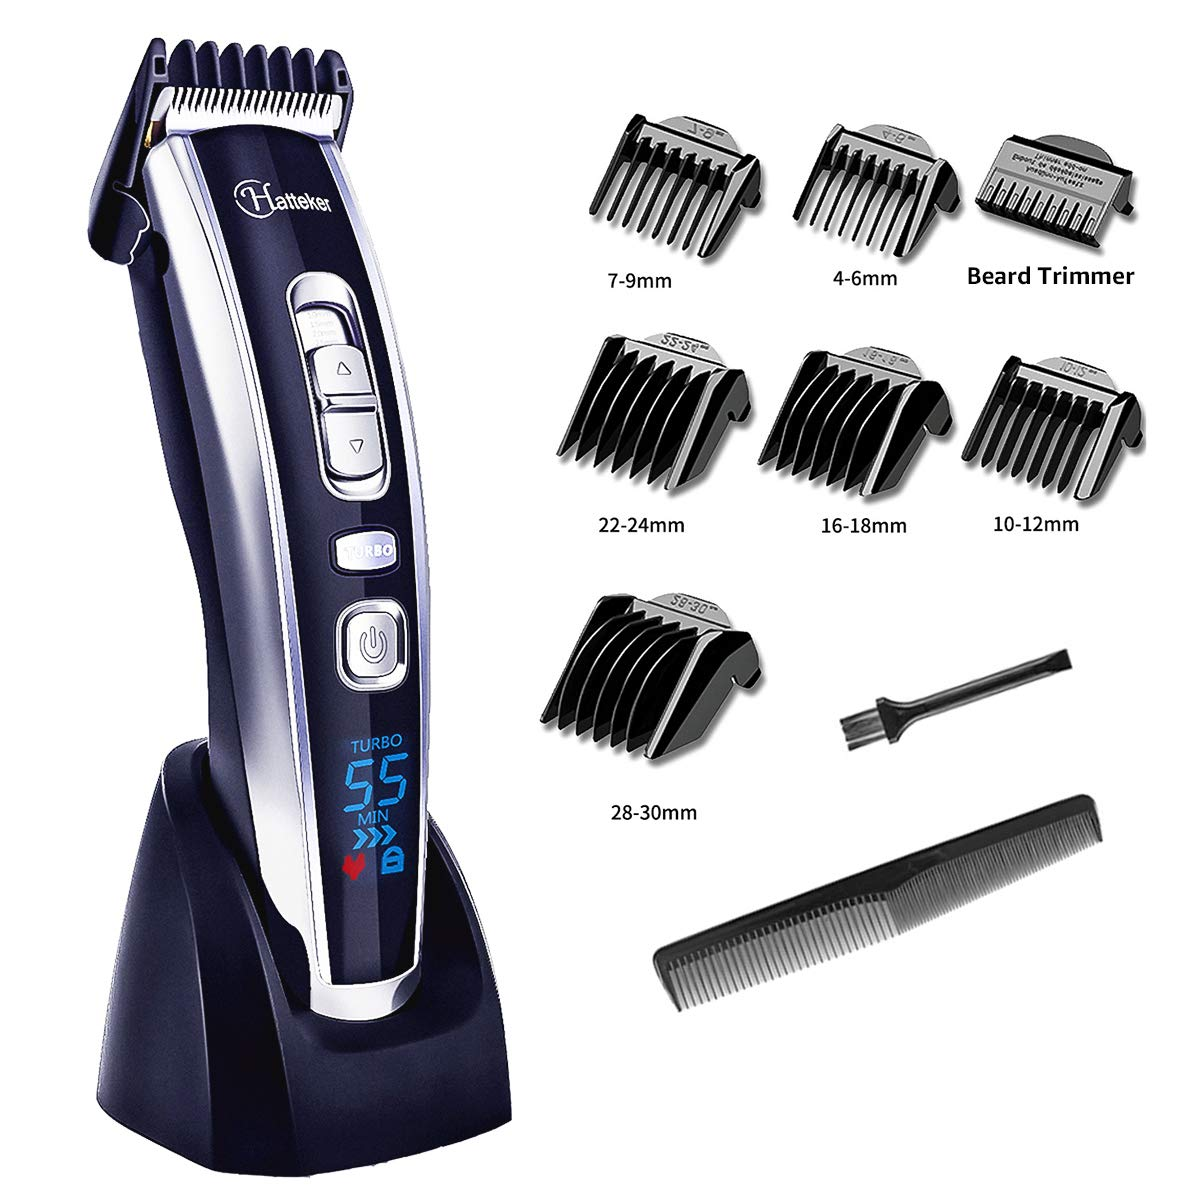 Hair Clippers for Men, Beard Trimmer Cordless Hair Trimmer Electric Haircut Kit Ceramic Blade Rechargeable LED Display Trimmer for Men